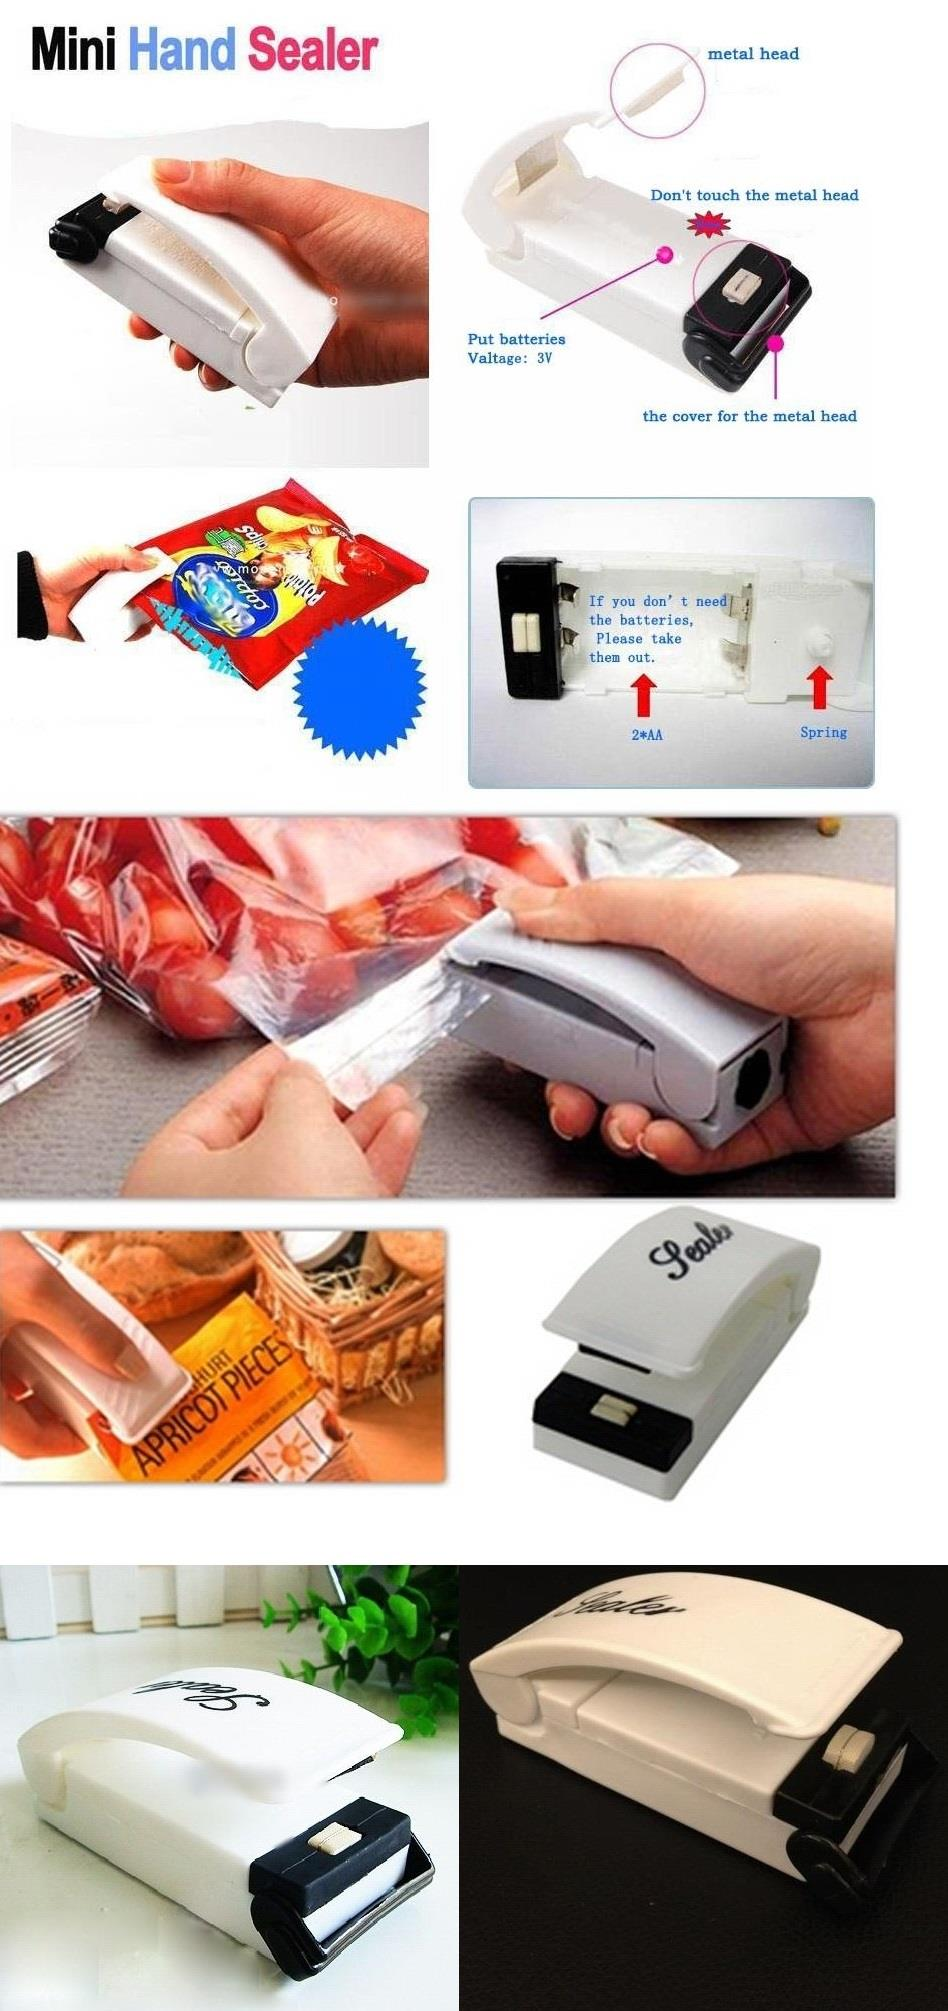 *Mini Portable^Hand Sealer Plastic Bag Food Storage Heat Seal